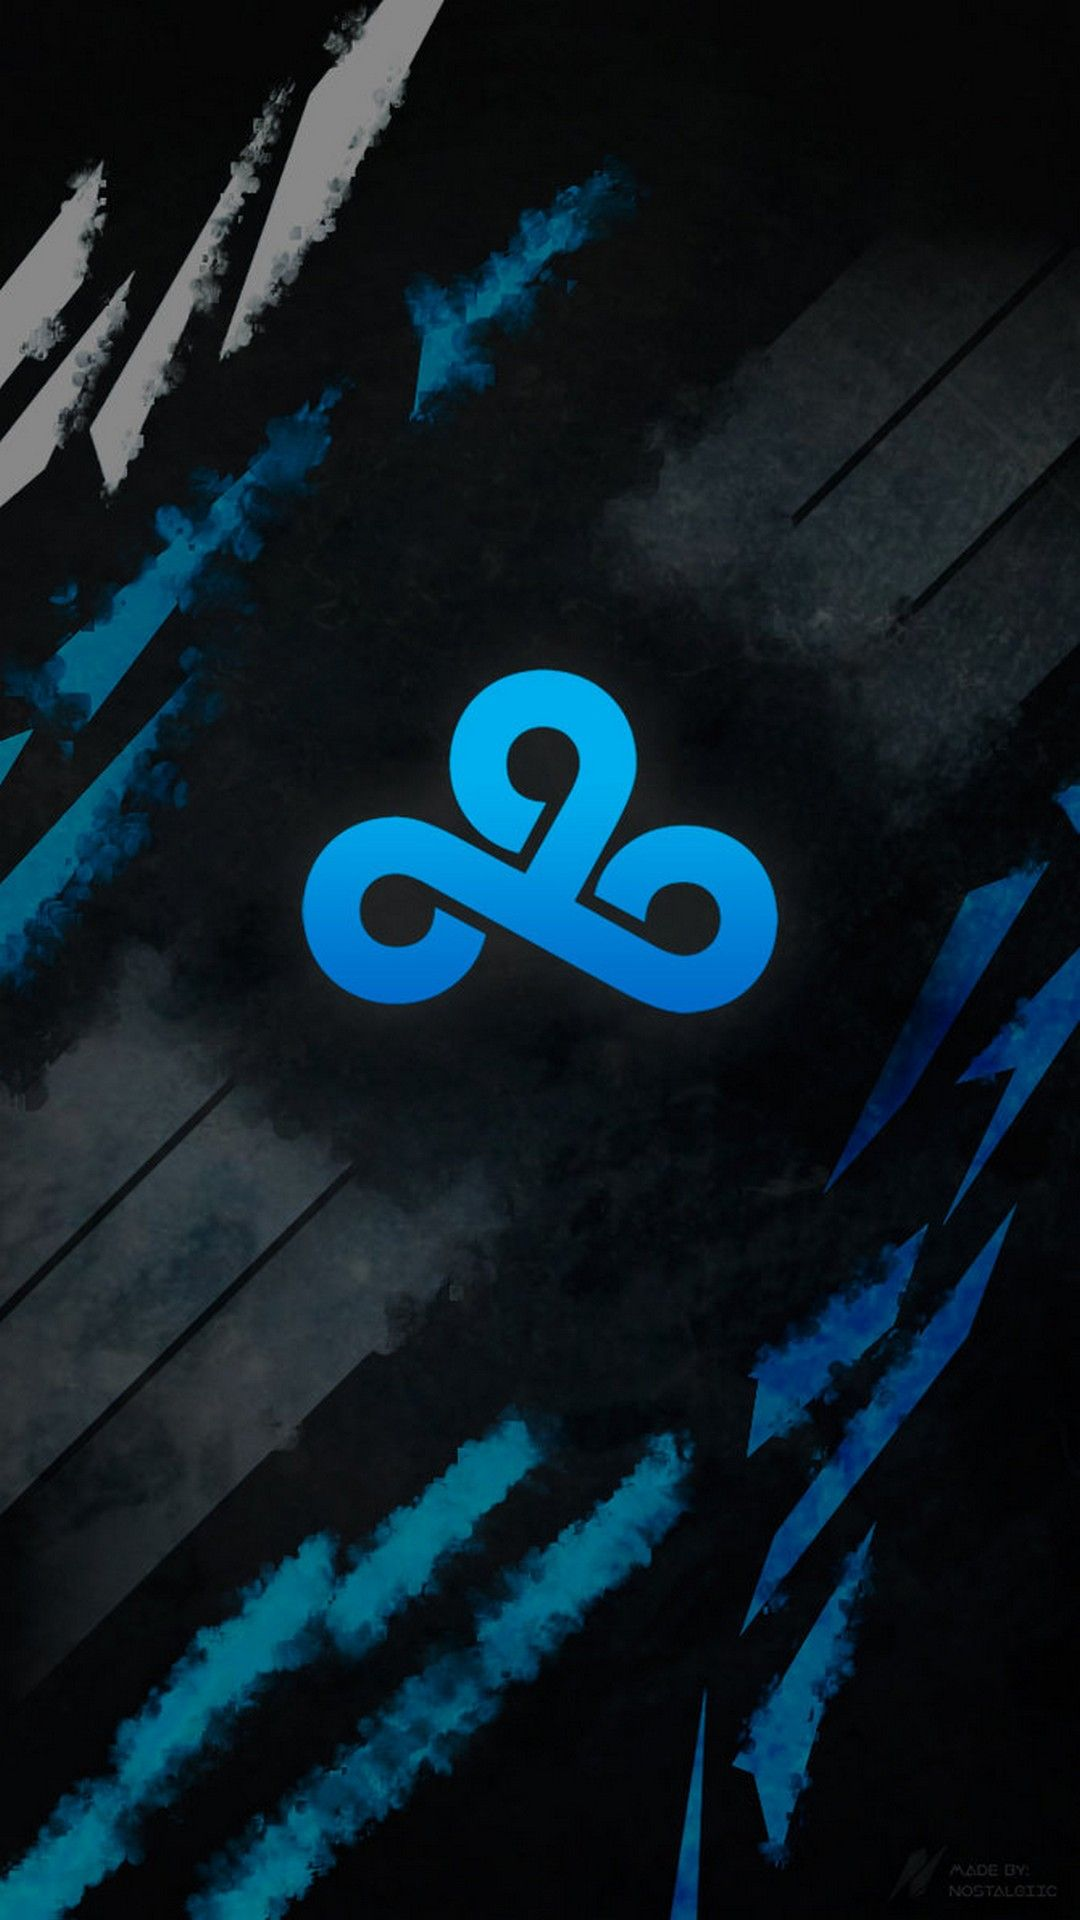 1080x1920 iPhone 8 Wallpaper Cloud 9 Games | Phone wallpapers | Wallpaper ...